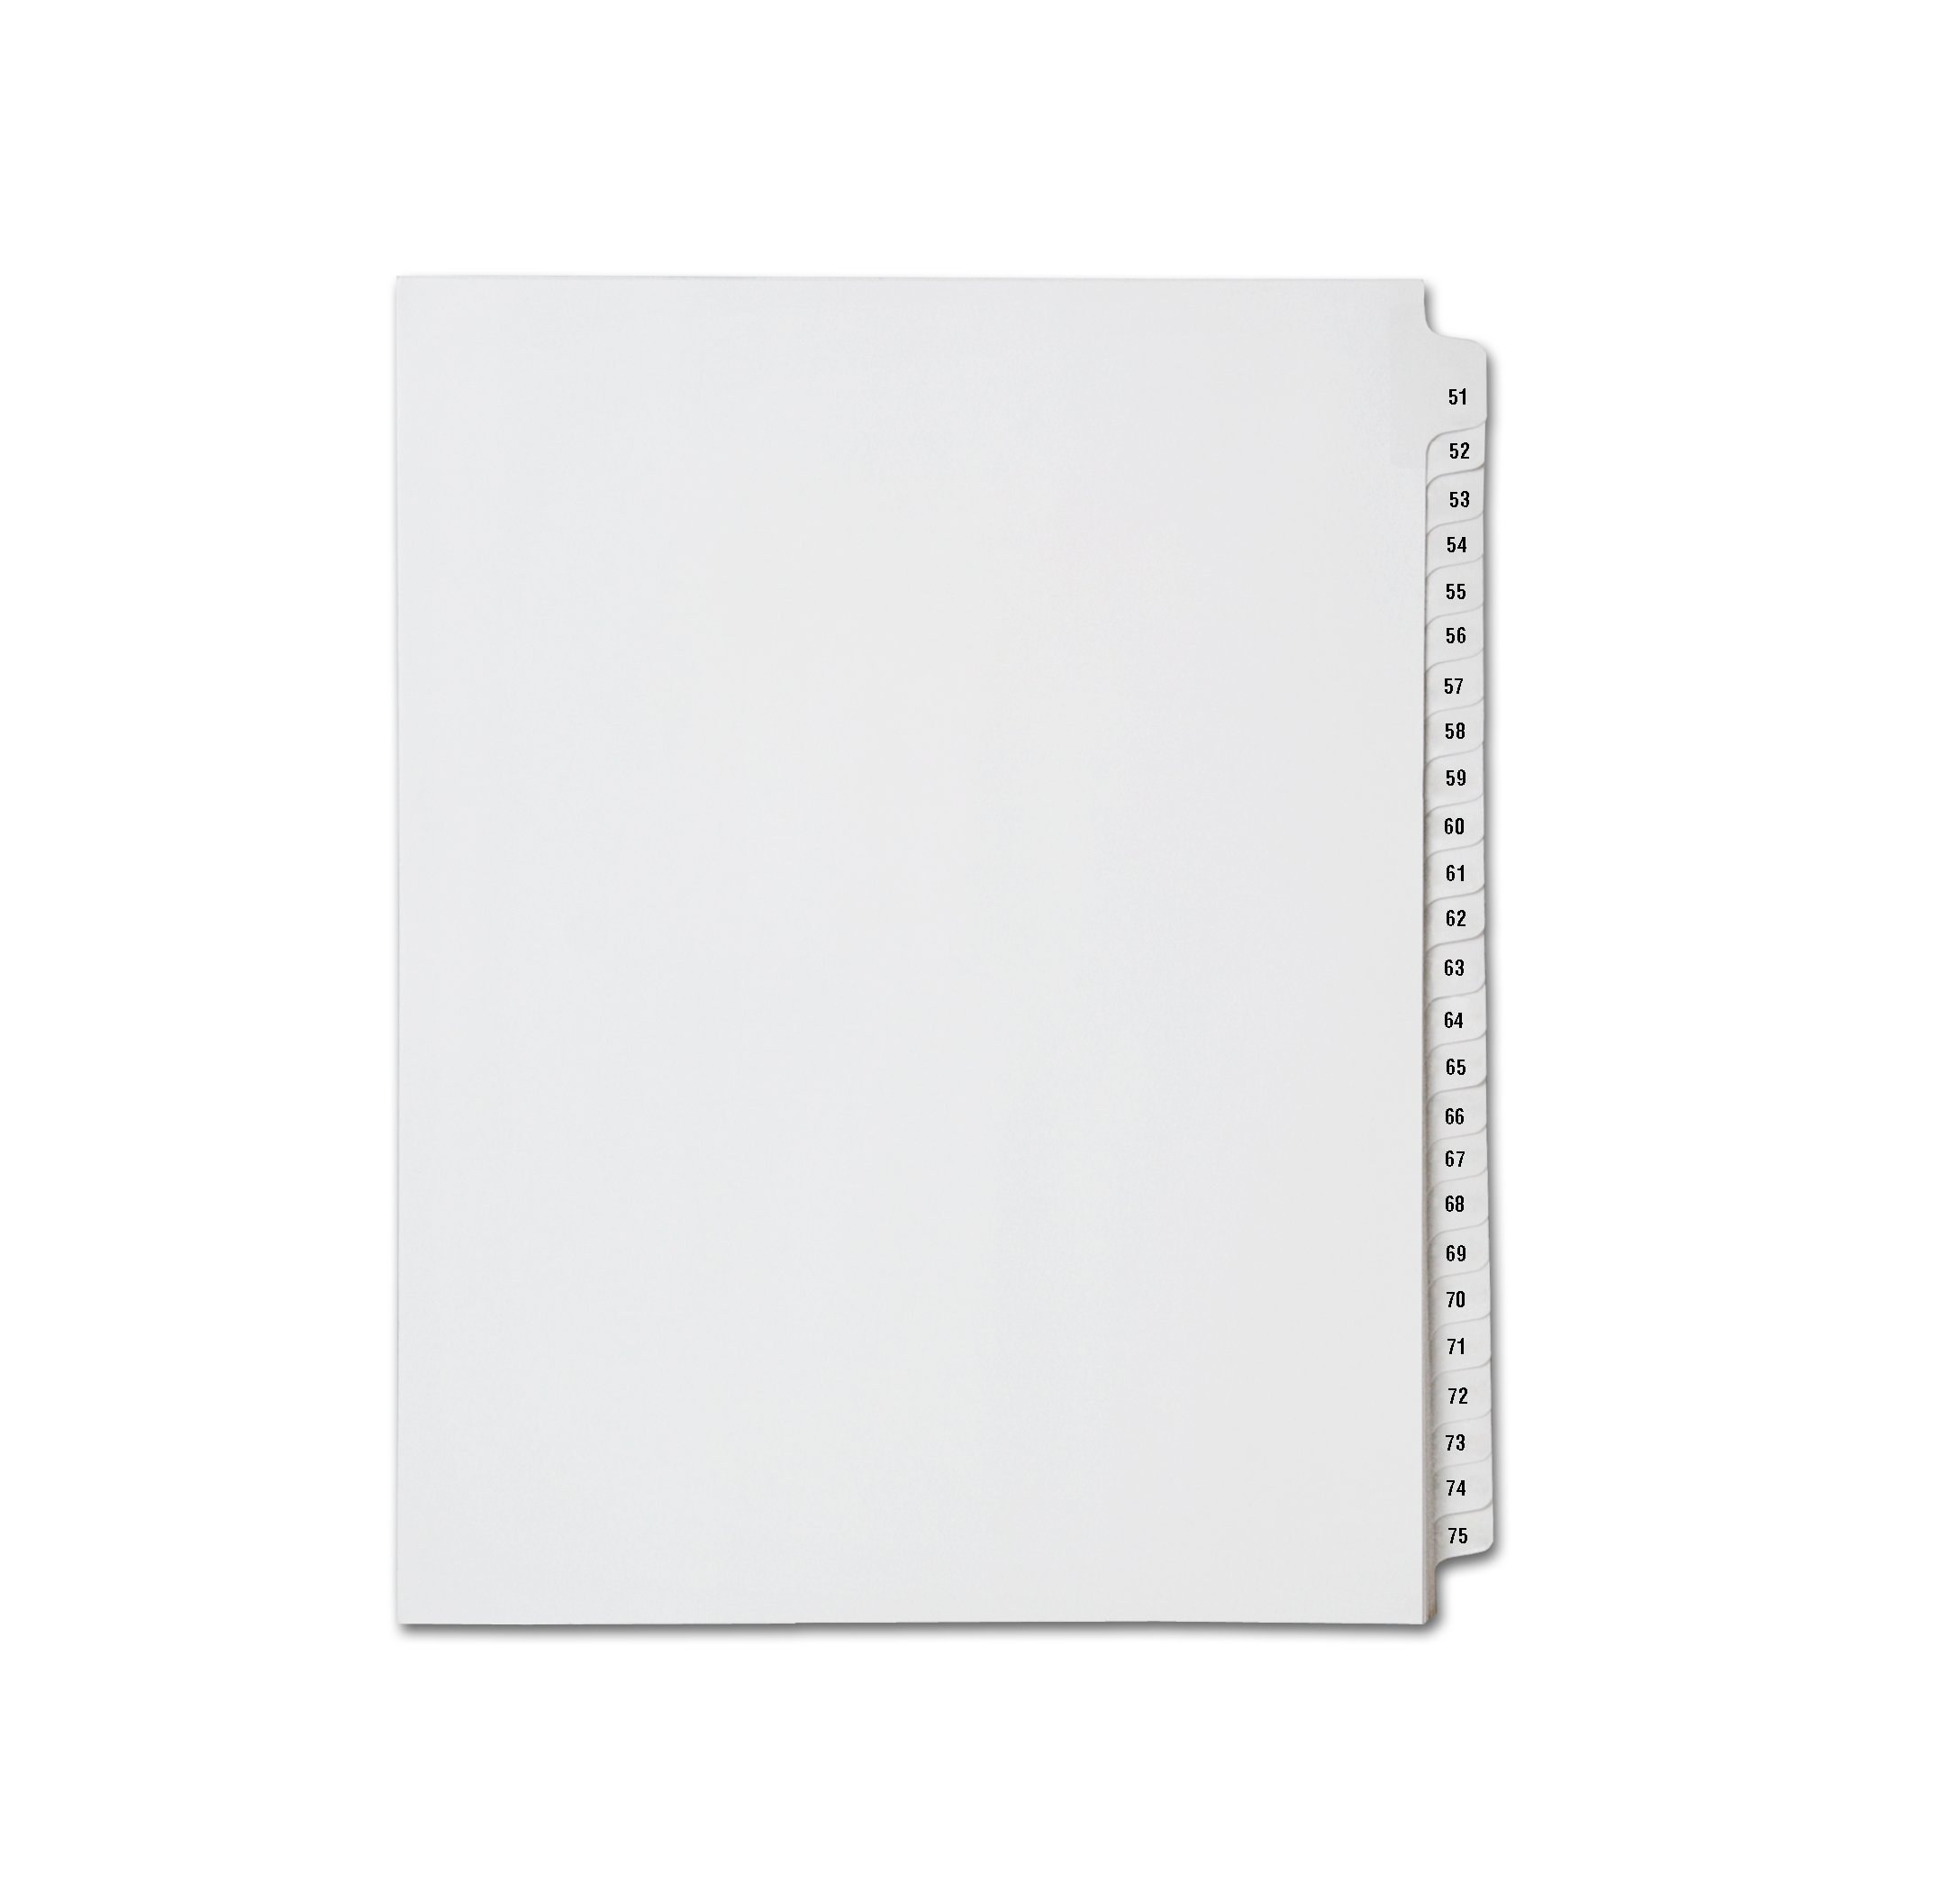 AMZfiling Collated Legal Index Dividers, Compatible with Avery- Numbers 51-75, Letter Size, White, Side Tabs (25 Sheets/pkg)